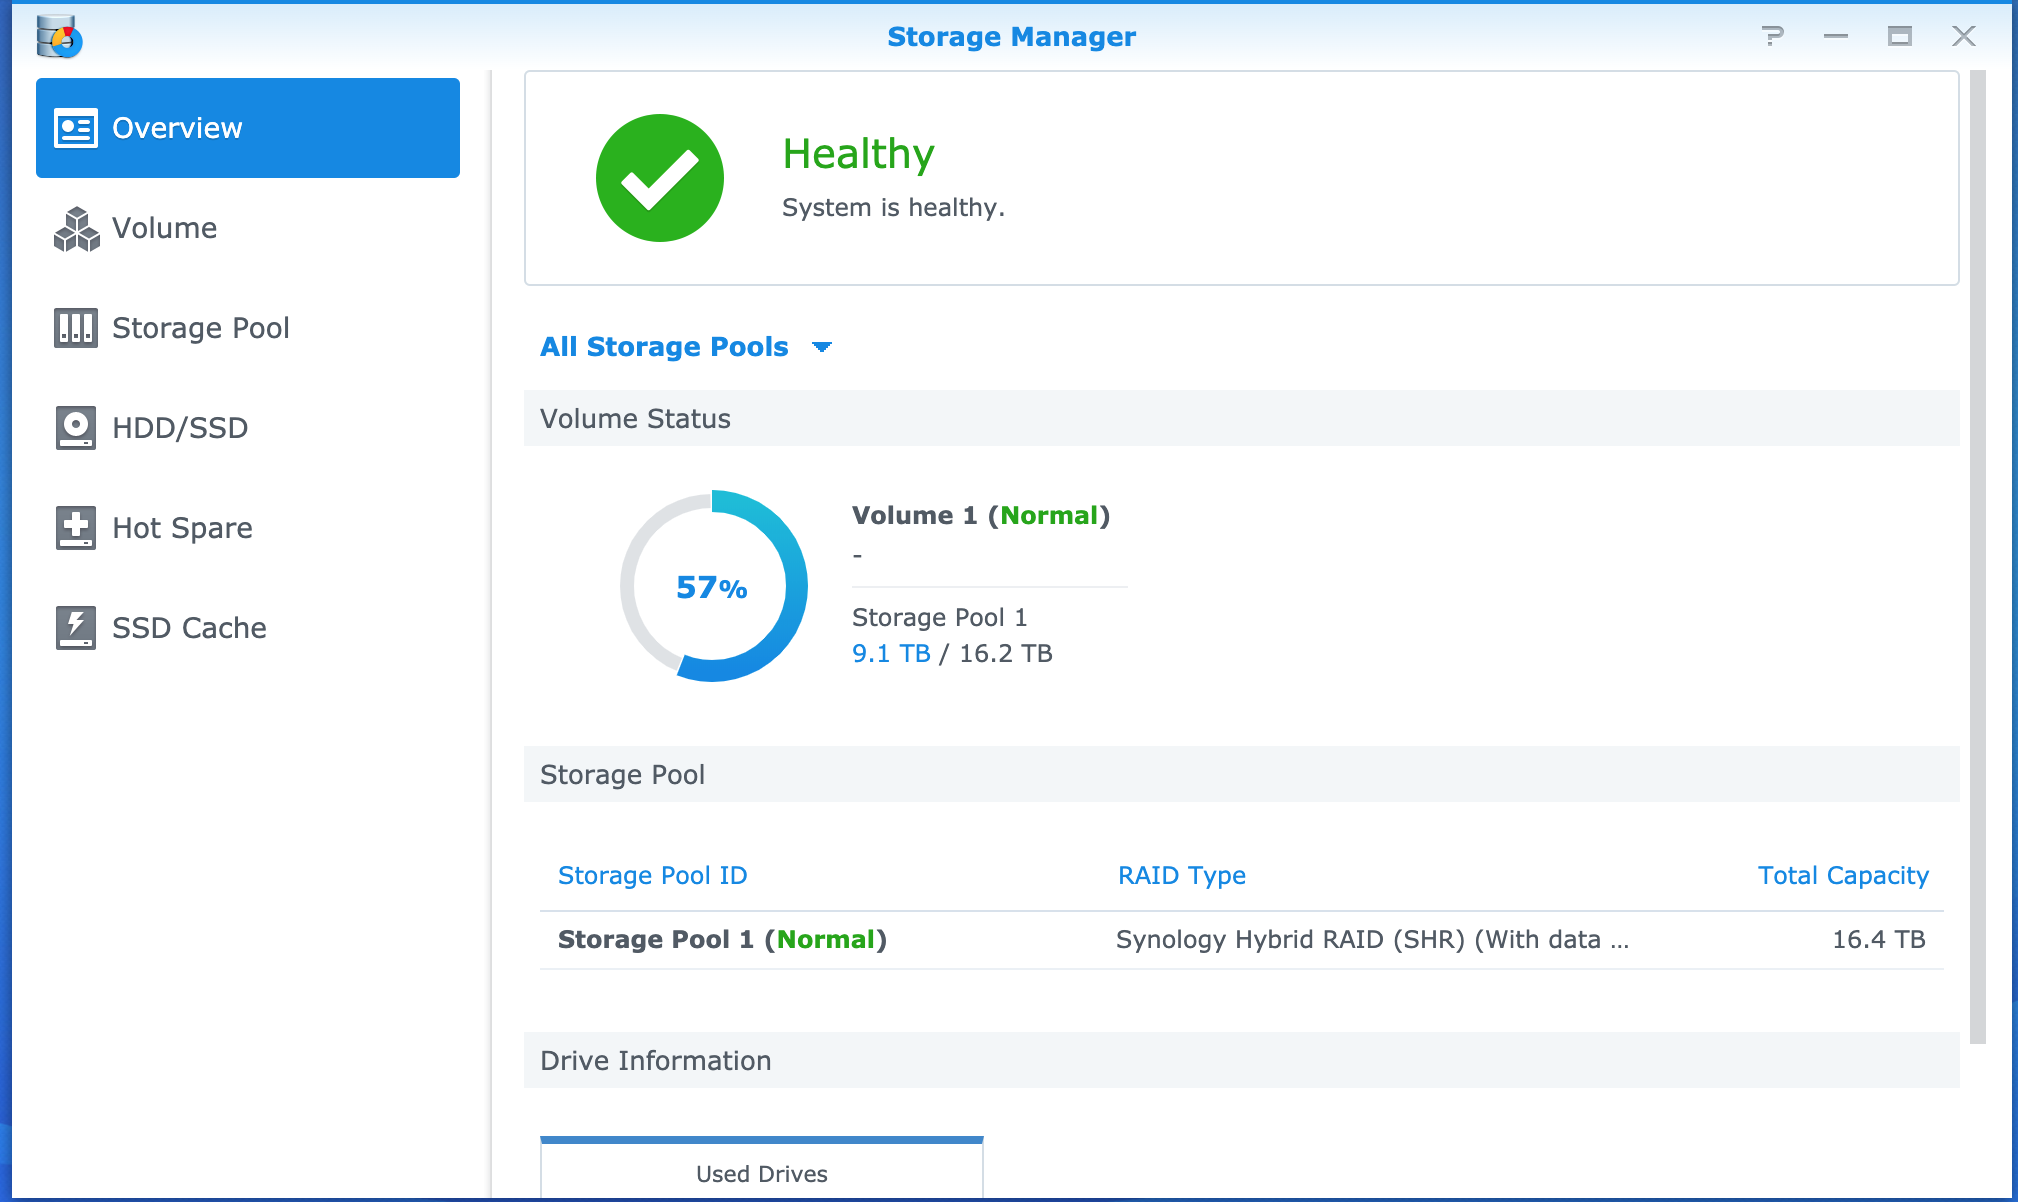 Synology - Storage Manager